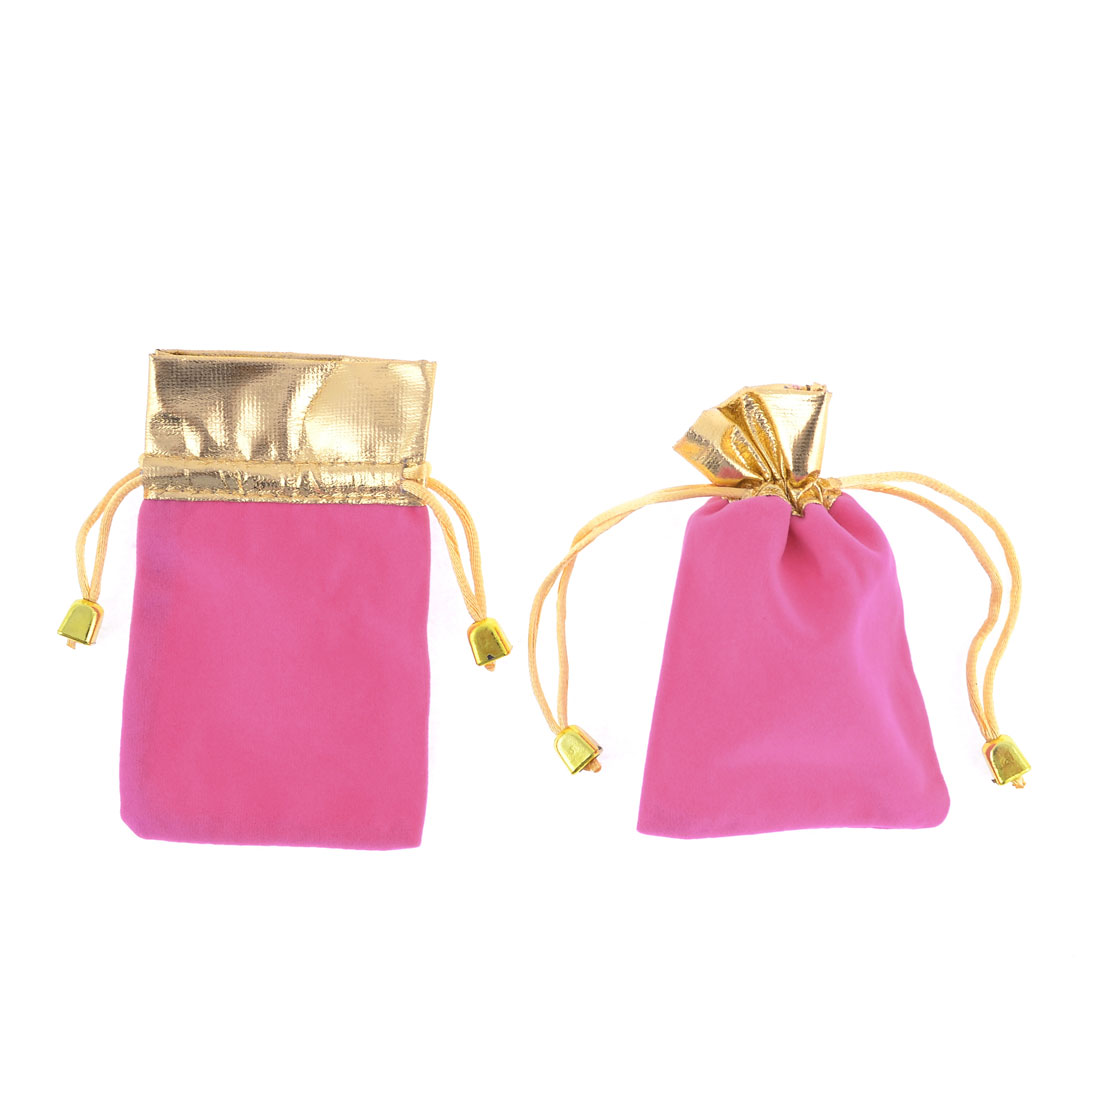 2 Pcs Pink Velvet Vertical Pull String Bag Pouch for Cell Phone MP3